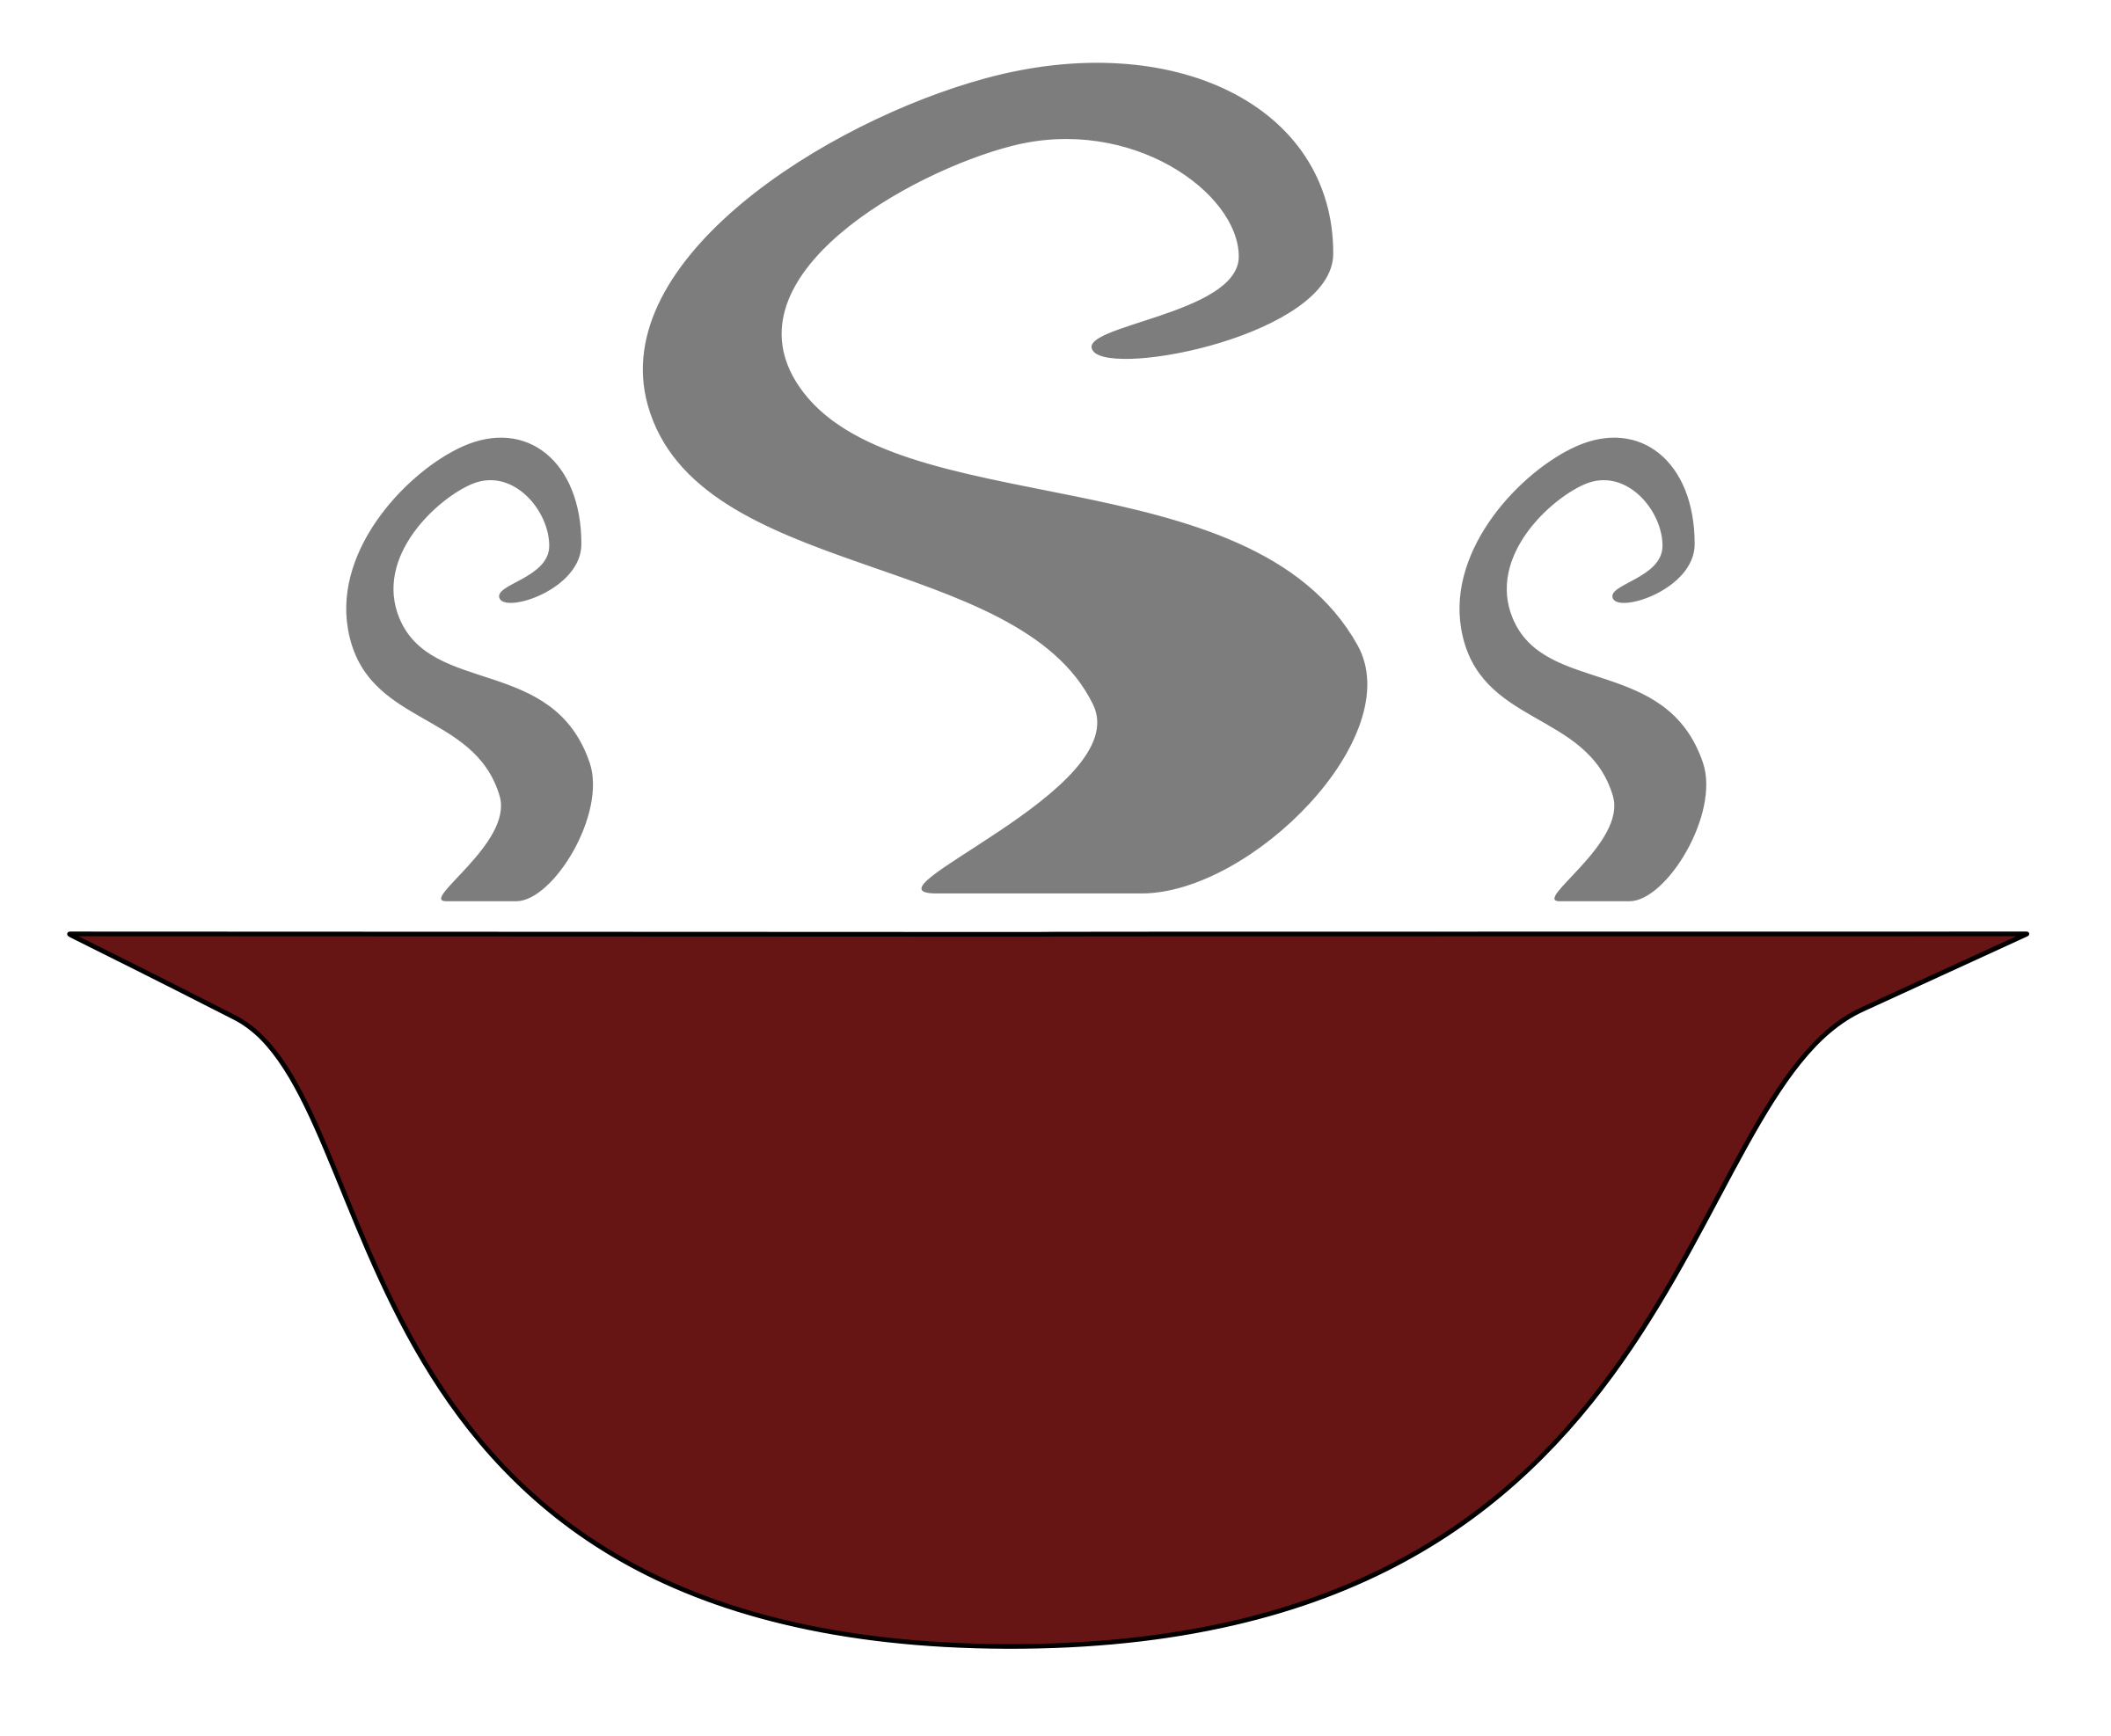 cooking bowl clipart - photo #31